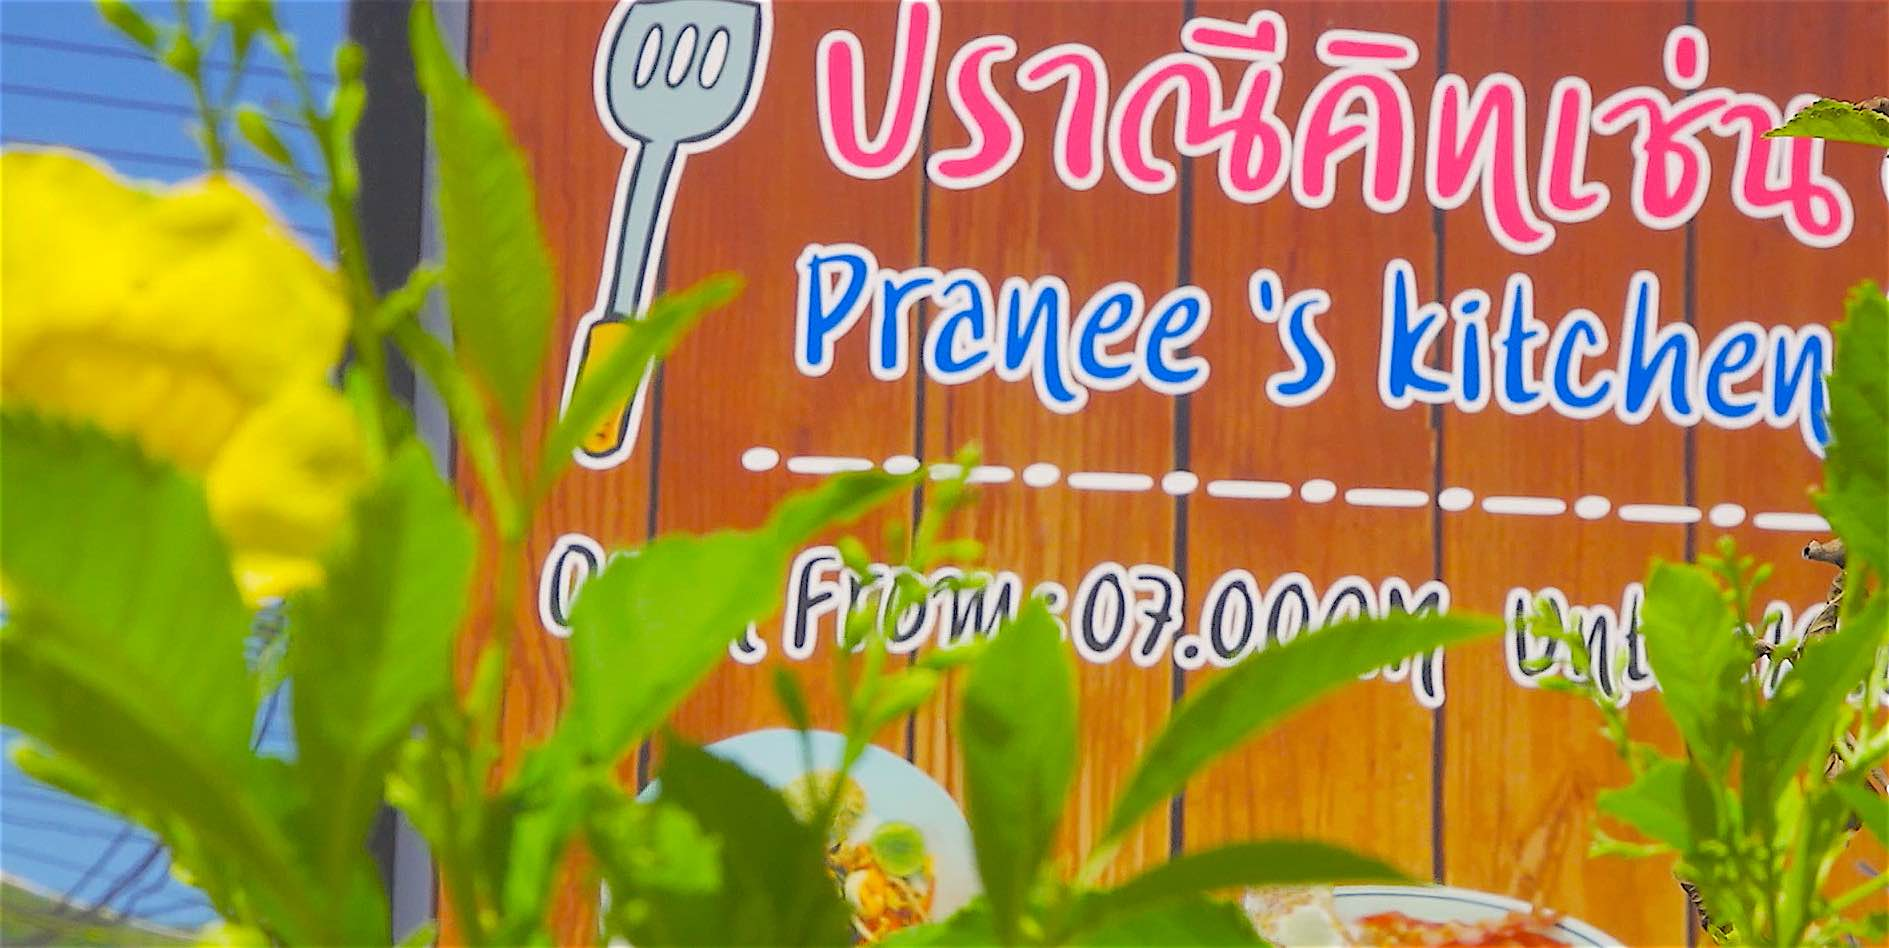 www.thefunkyturtle.com pranees kitchen thai food koh tao